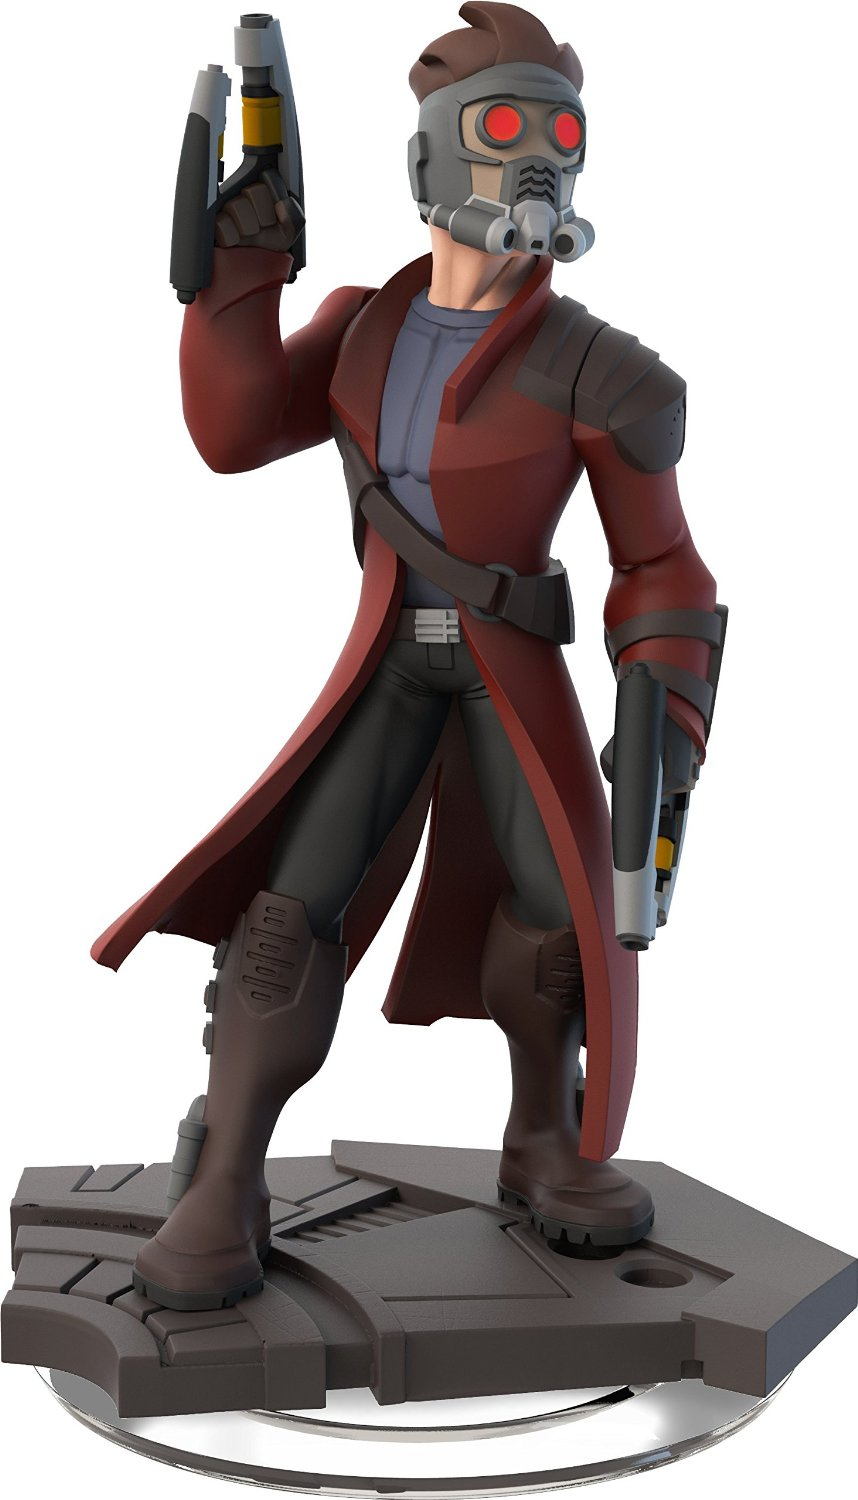 Disney-Infinity-2.0-Star-Lord-Character